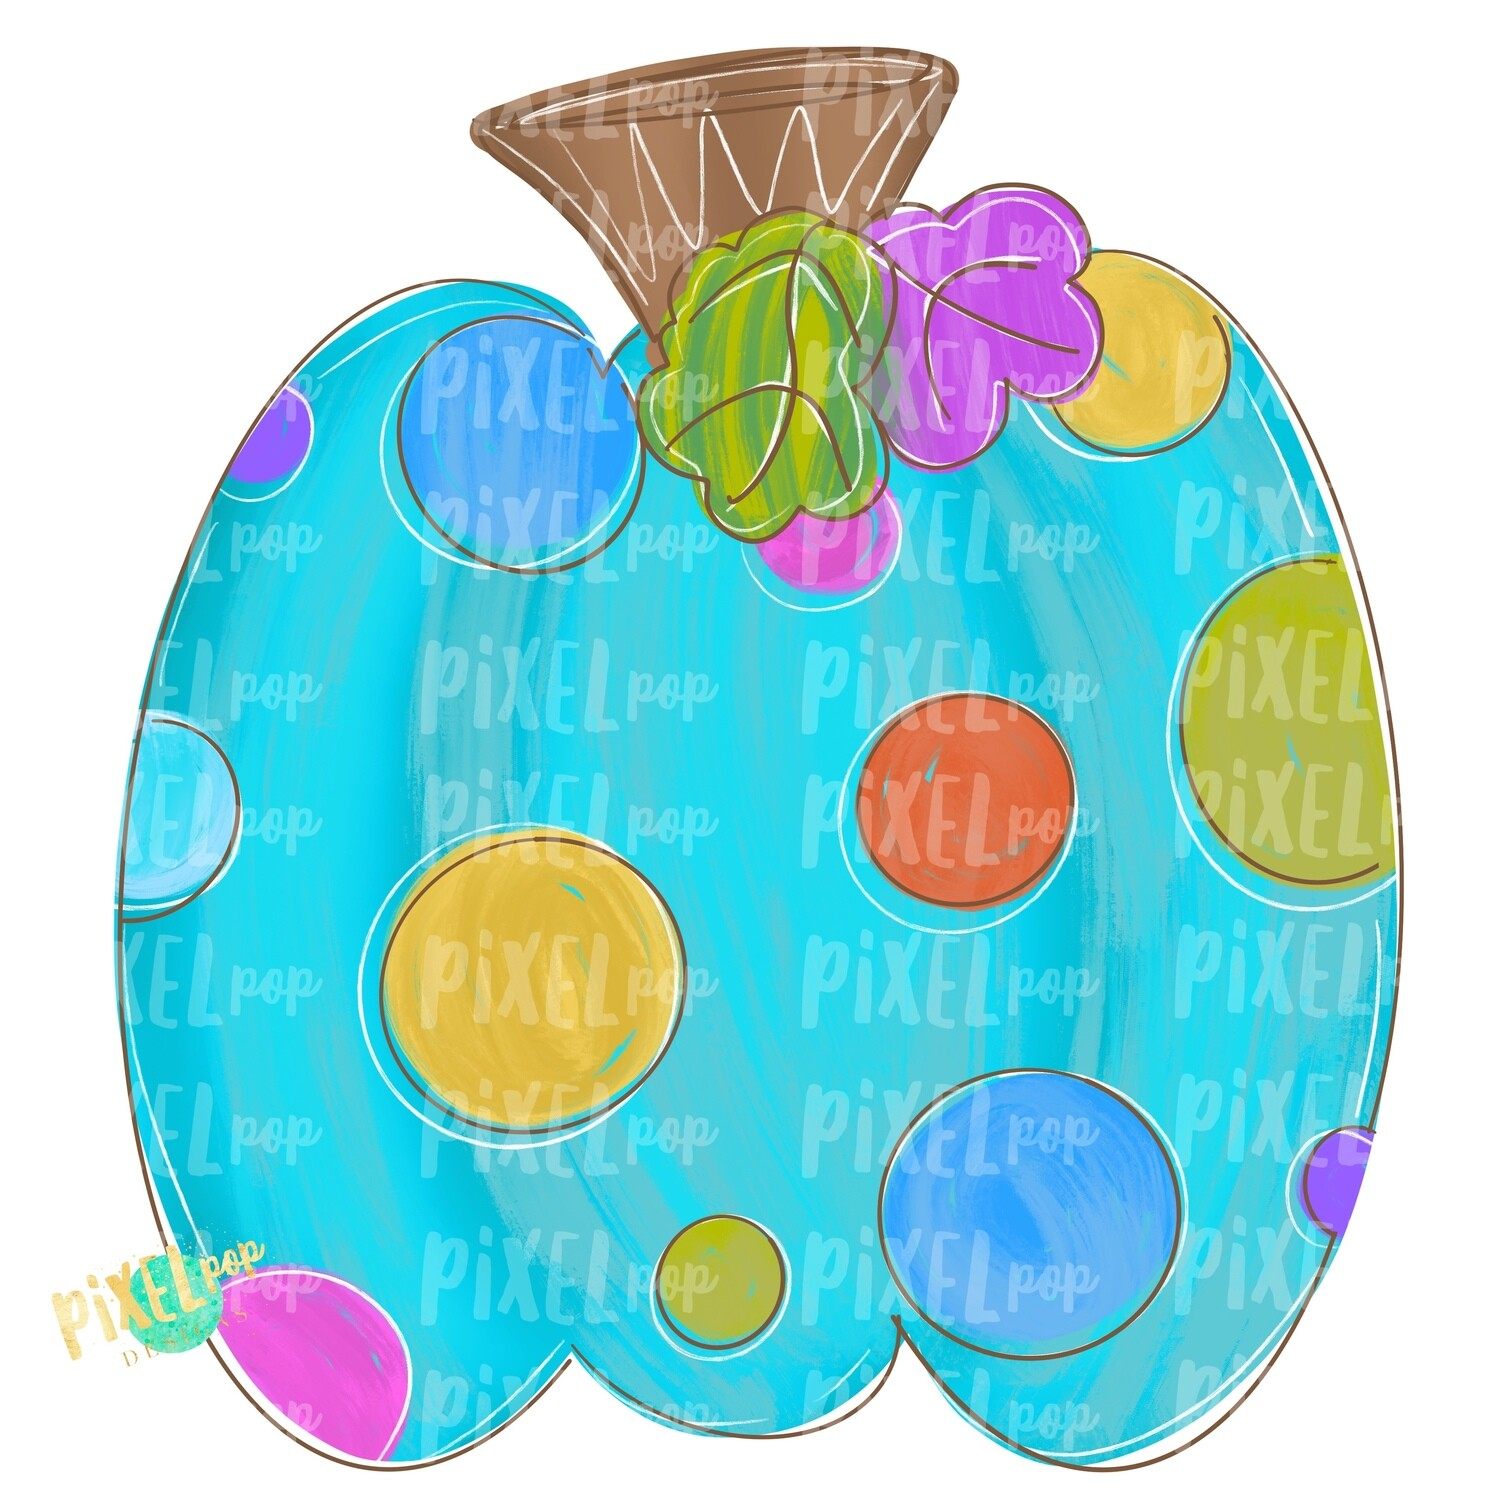 Colorful Polka Dot Pumpkin Turquoise PNG | Halloween Design | Fall Design | Fall Art | Sublimation PNG | Digital Art | Printable Artwork